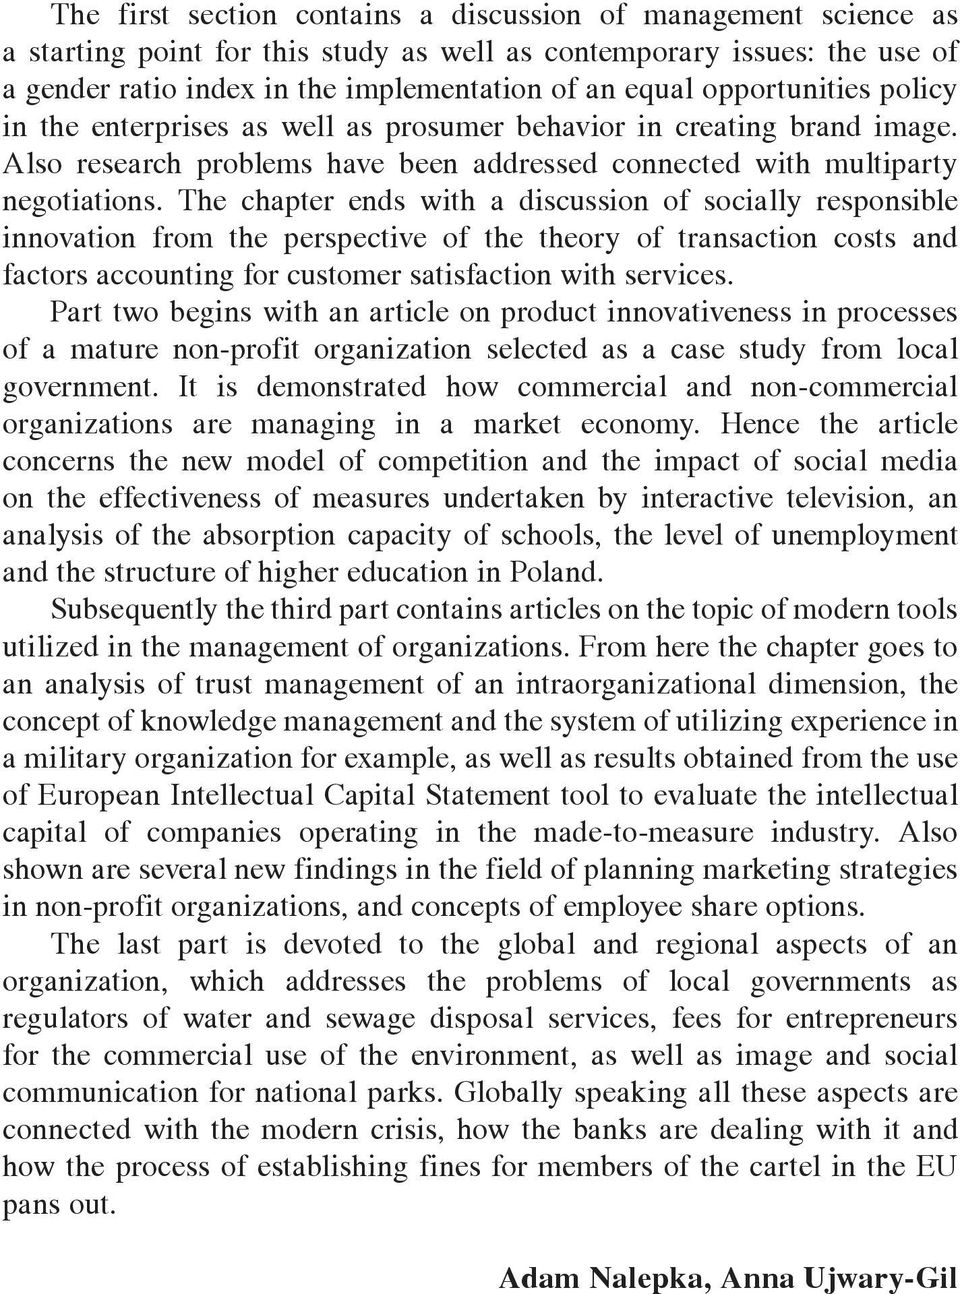 The chapter ends with a discussion of socially responsible innovation from the perspective of the theory of transaction costs and factors accounting for customer satisfaction with services.